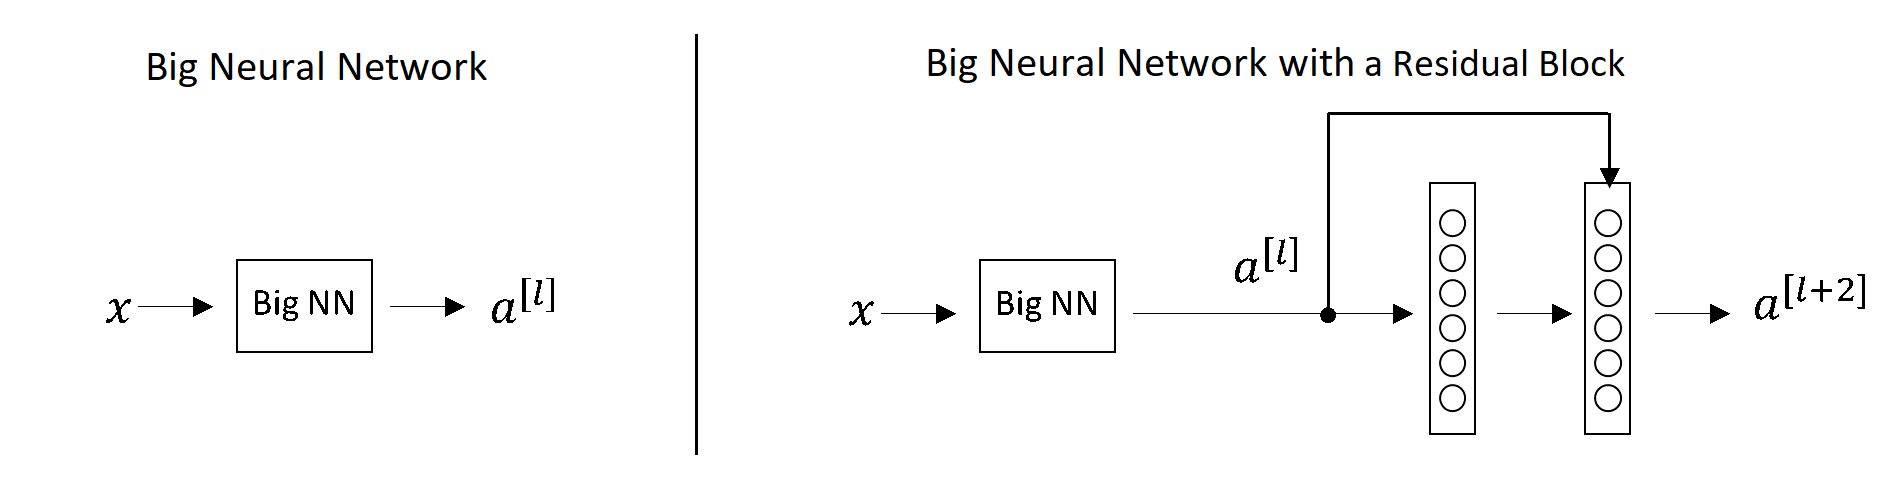 Big Neural Network on the left and Big Neural with a Residual Block on the right